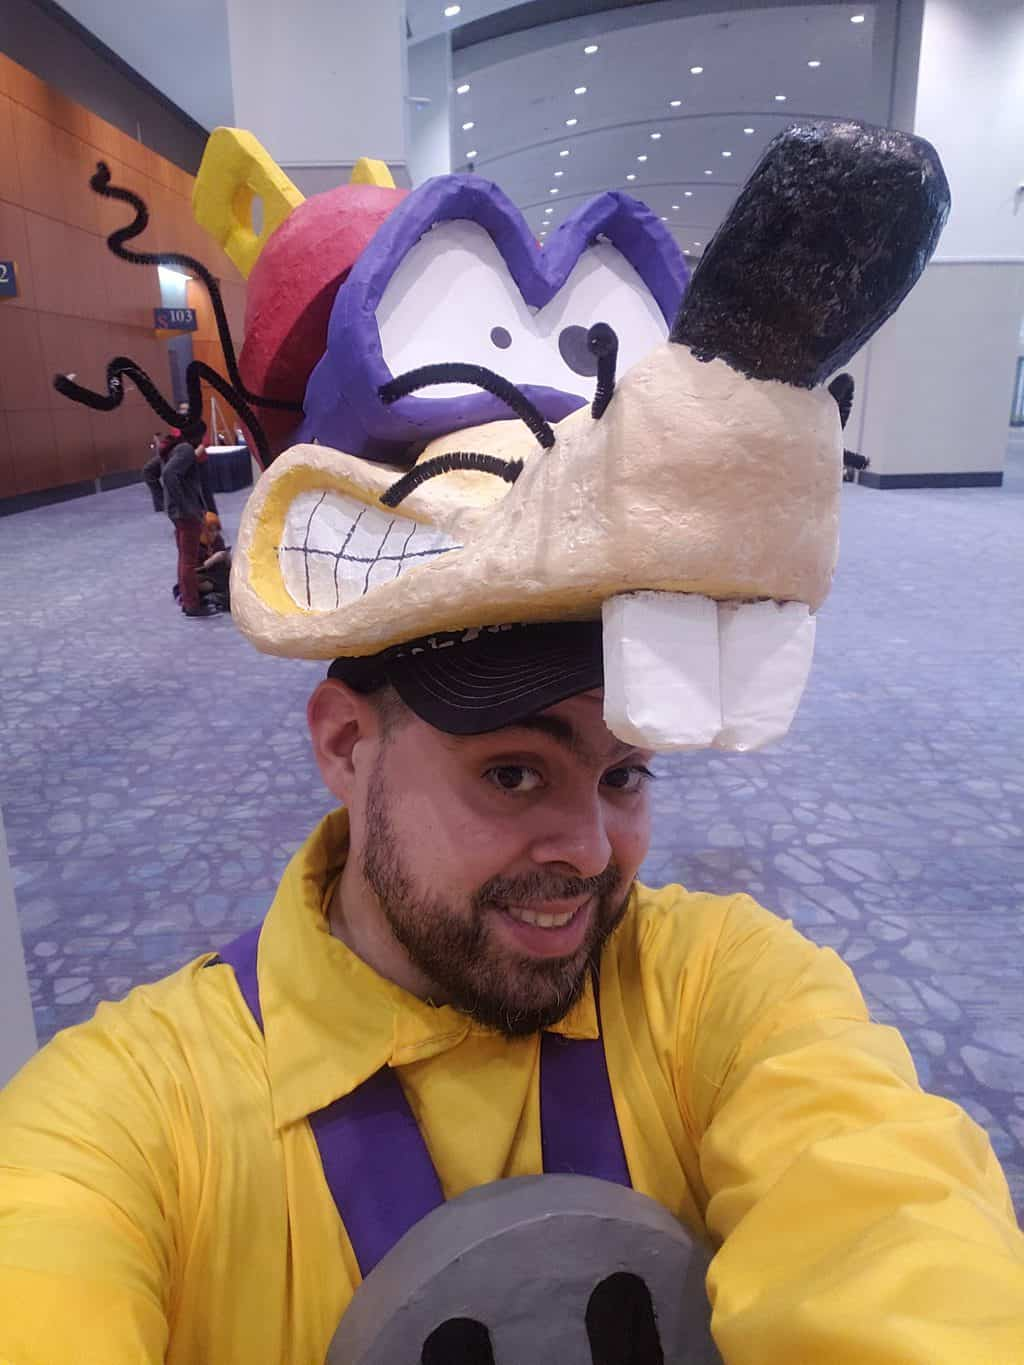 Megavolt Cosplay Headpiece made with paper mache clay